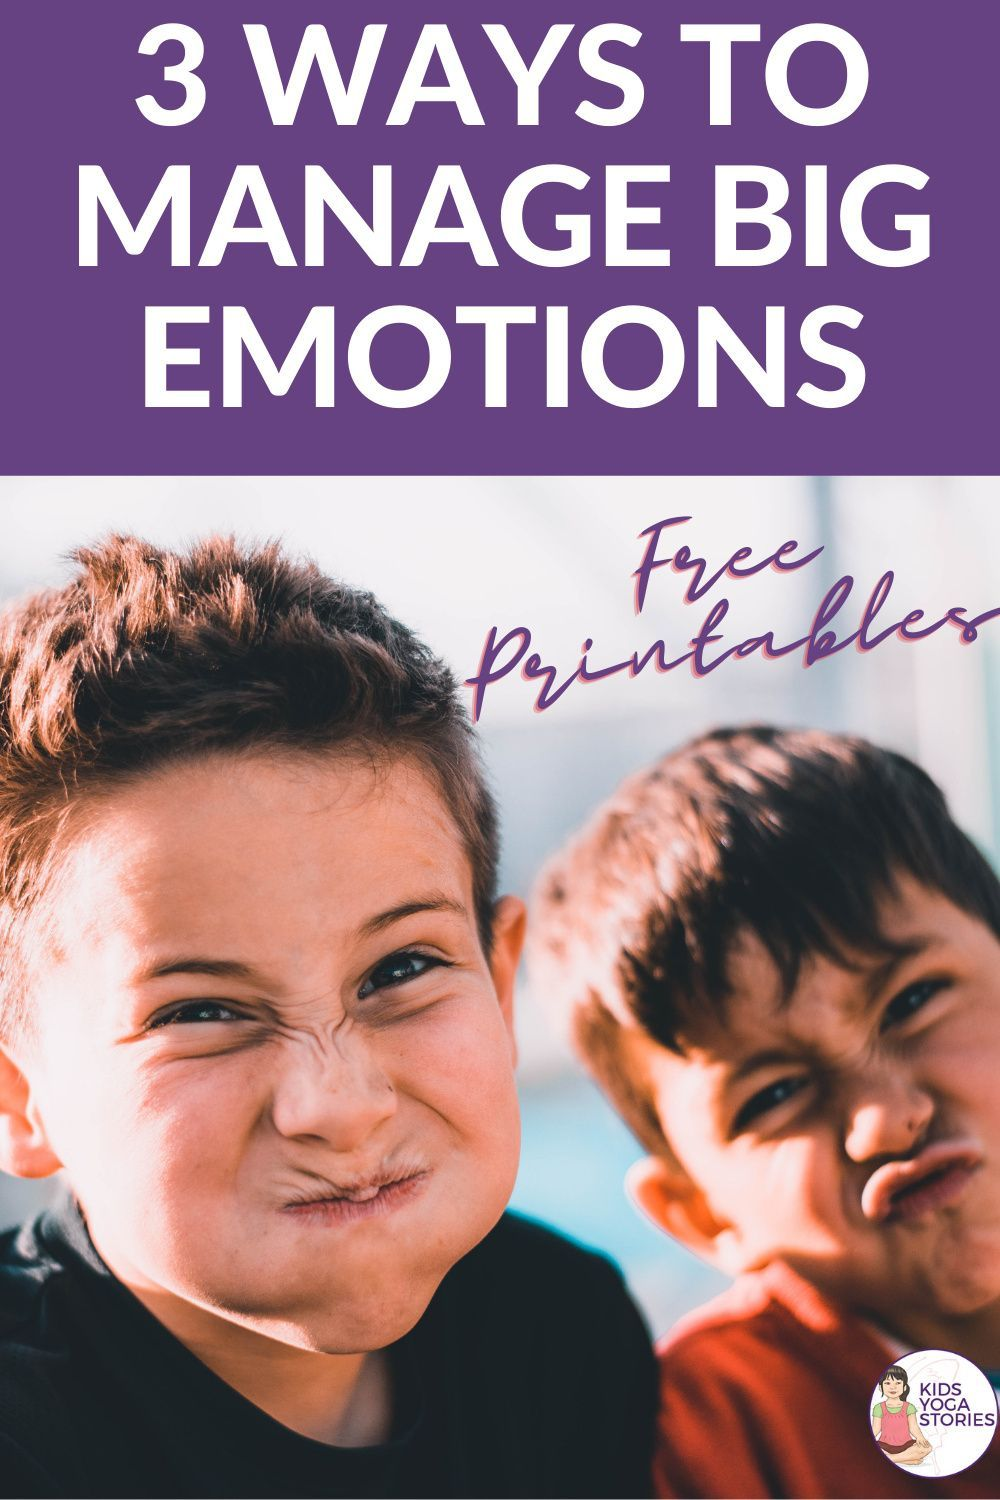 3 Ways to Manage Big Emotions - Kids Yoga Stories   Yoga resources for kids